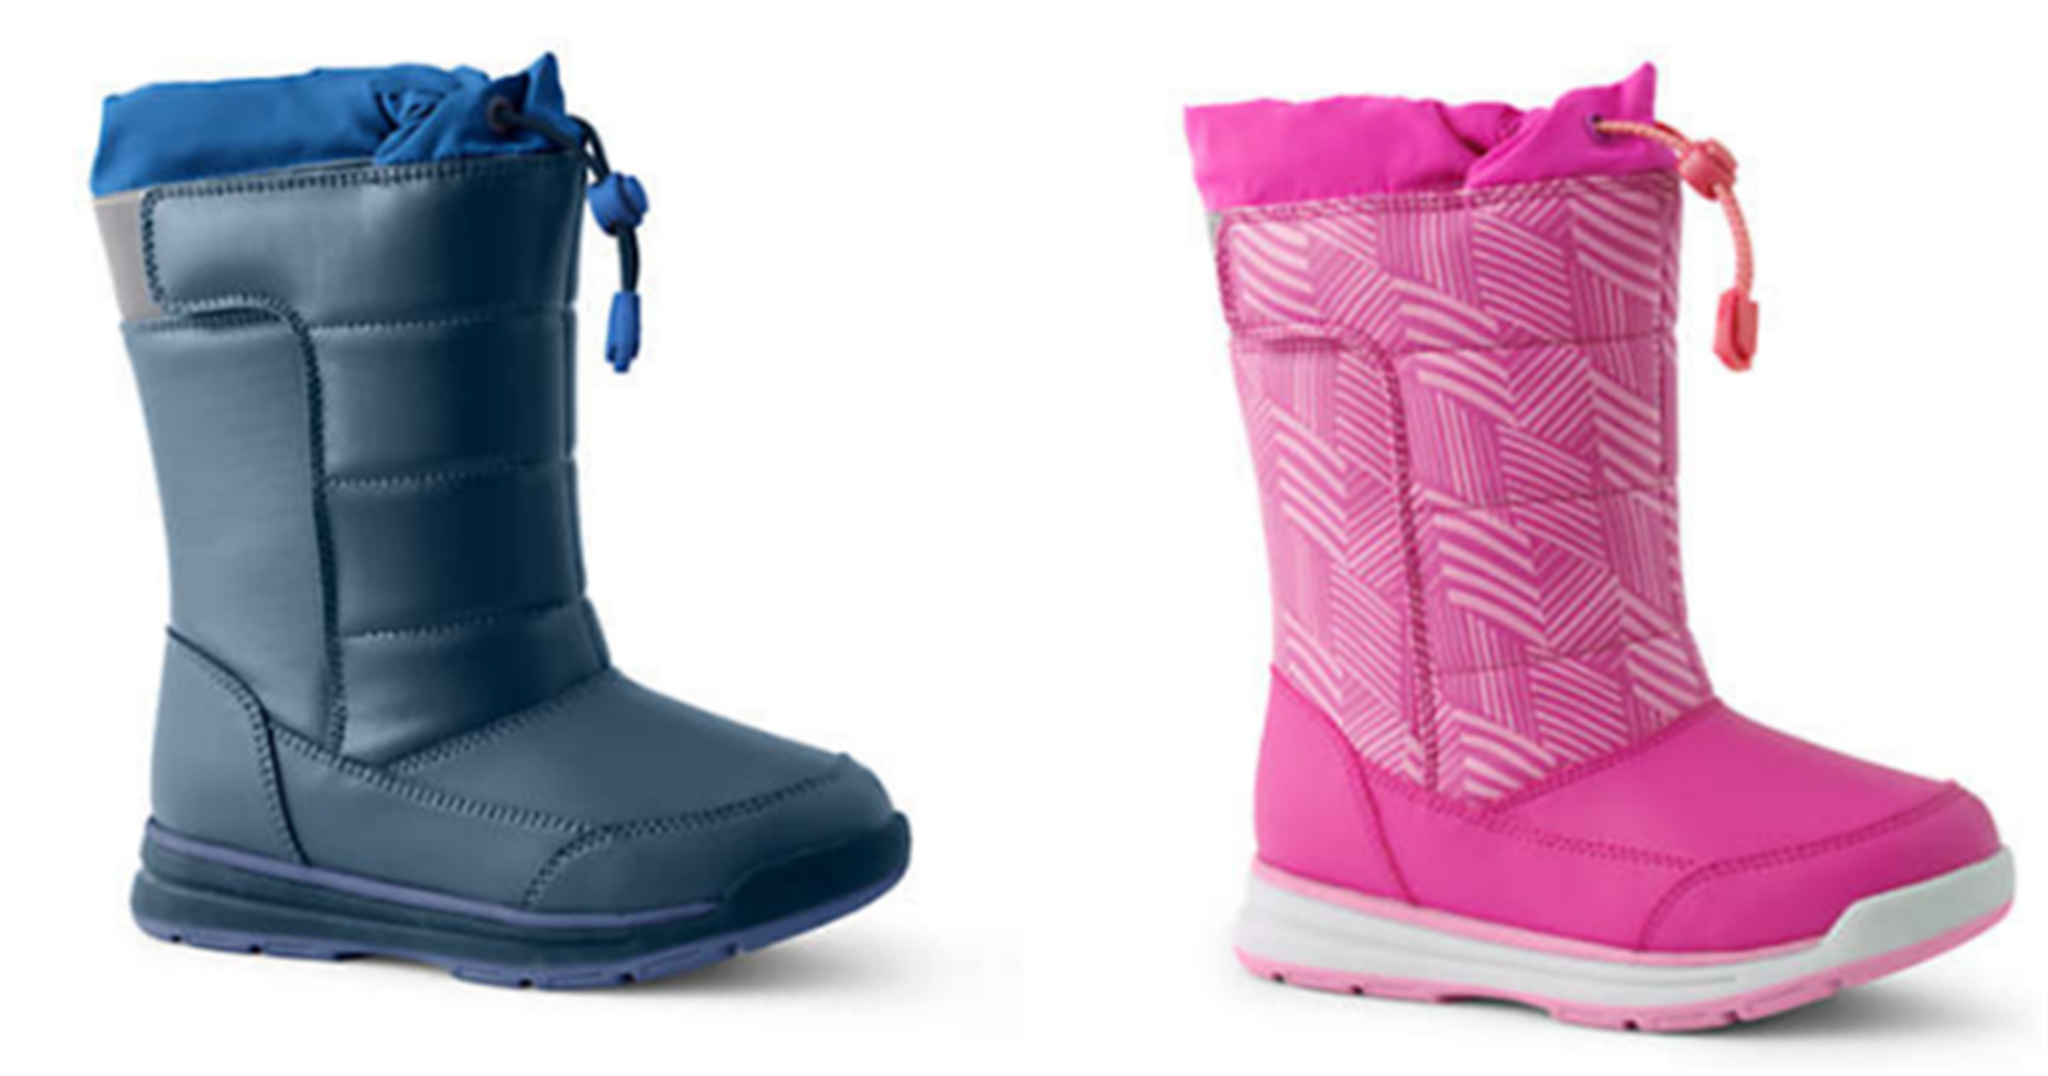 Lands' End Take An Additional 50% Off Order With Code + Free Shipping! Kids' Snow Flurry Winter Boots Only $15, Reg $60